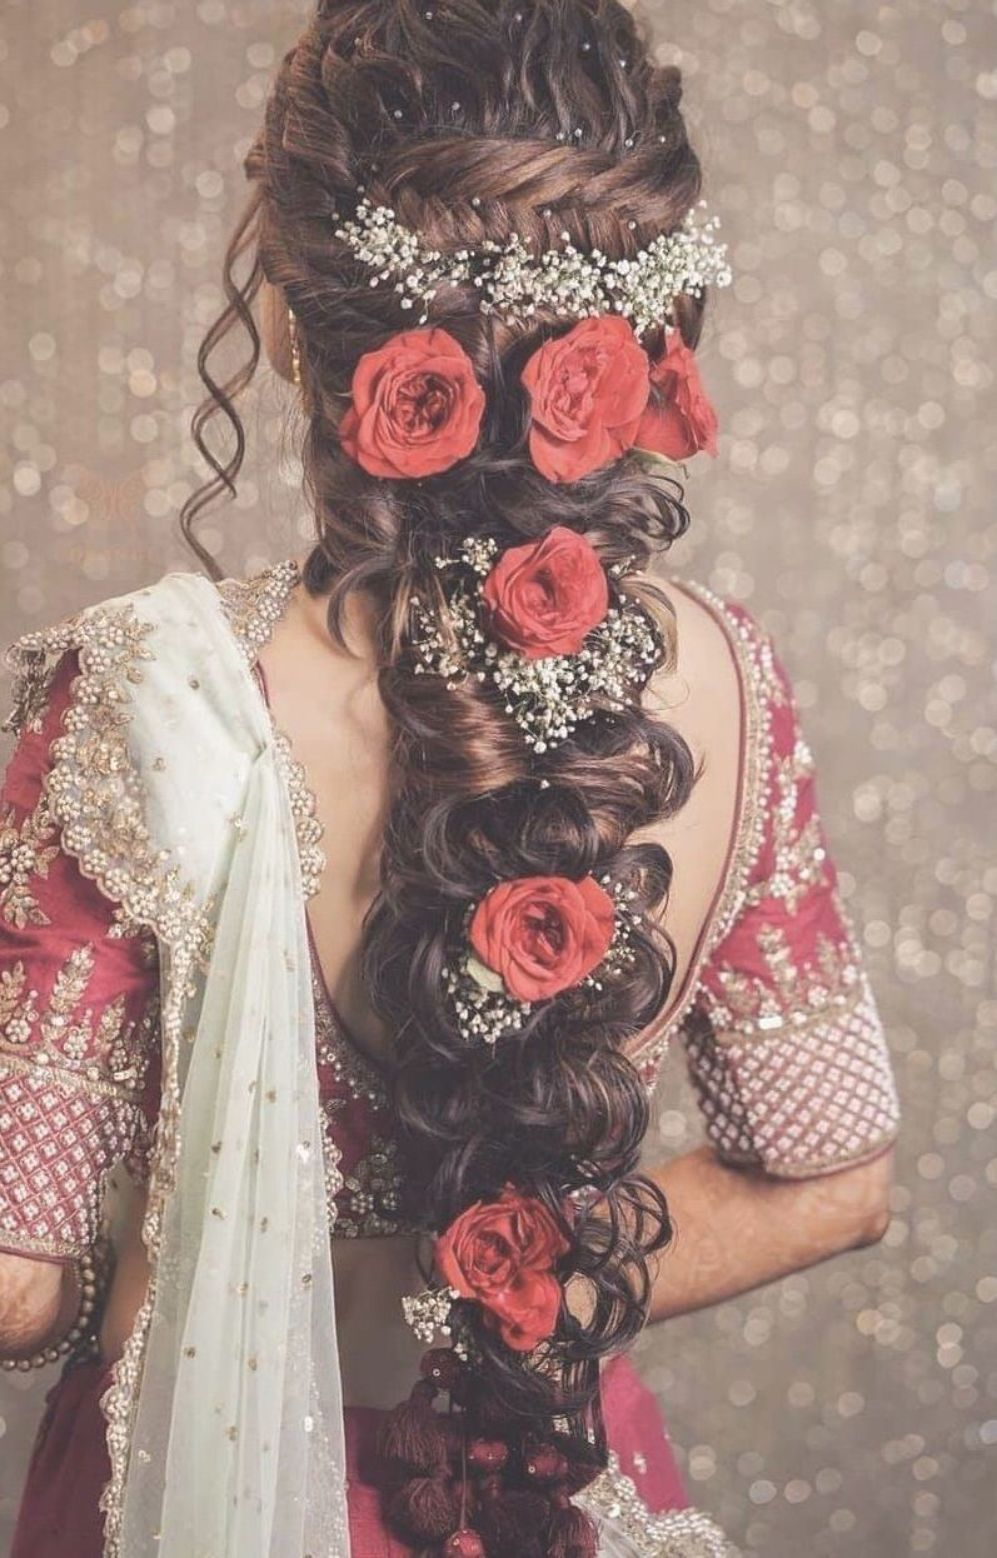 Bridalhairstyles Hairstyles2019 Hairstyles Beautiful Hairstyle Bridal Design Beautiful Brid Hair Styles Engagement Hairstyles Indian Wedding Hairstyles